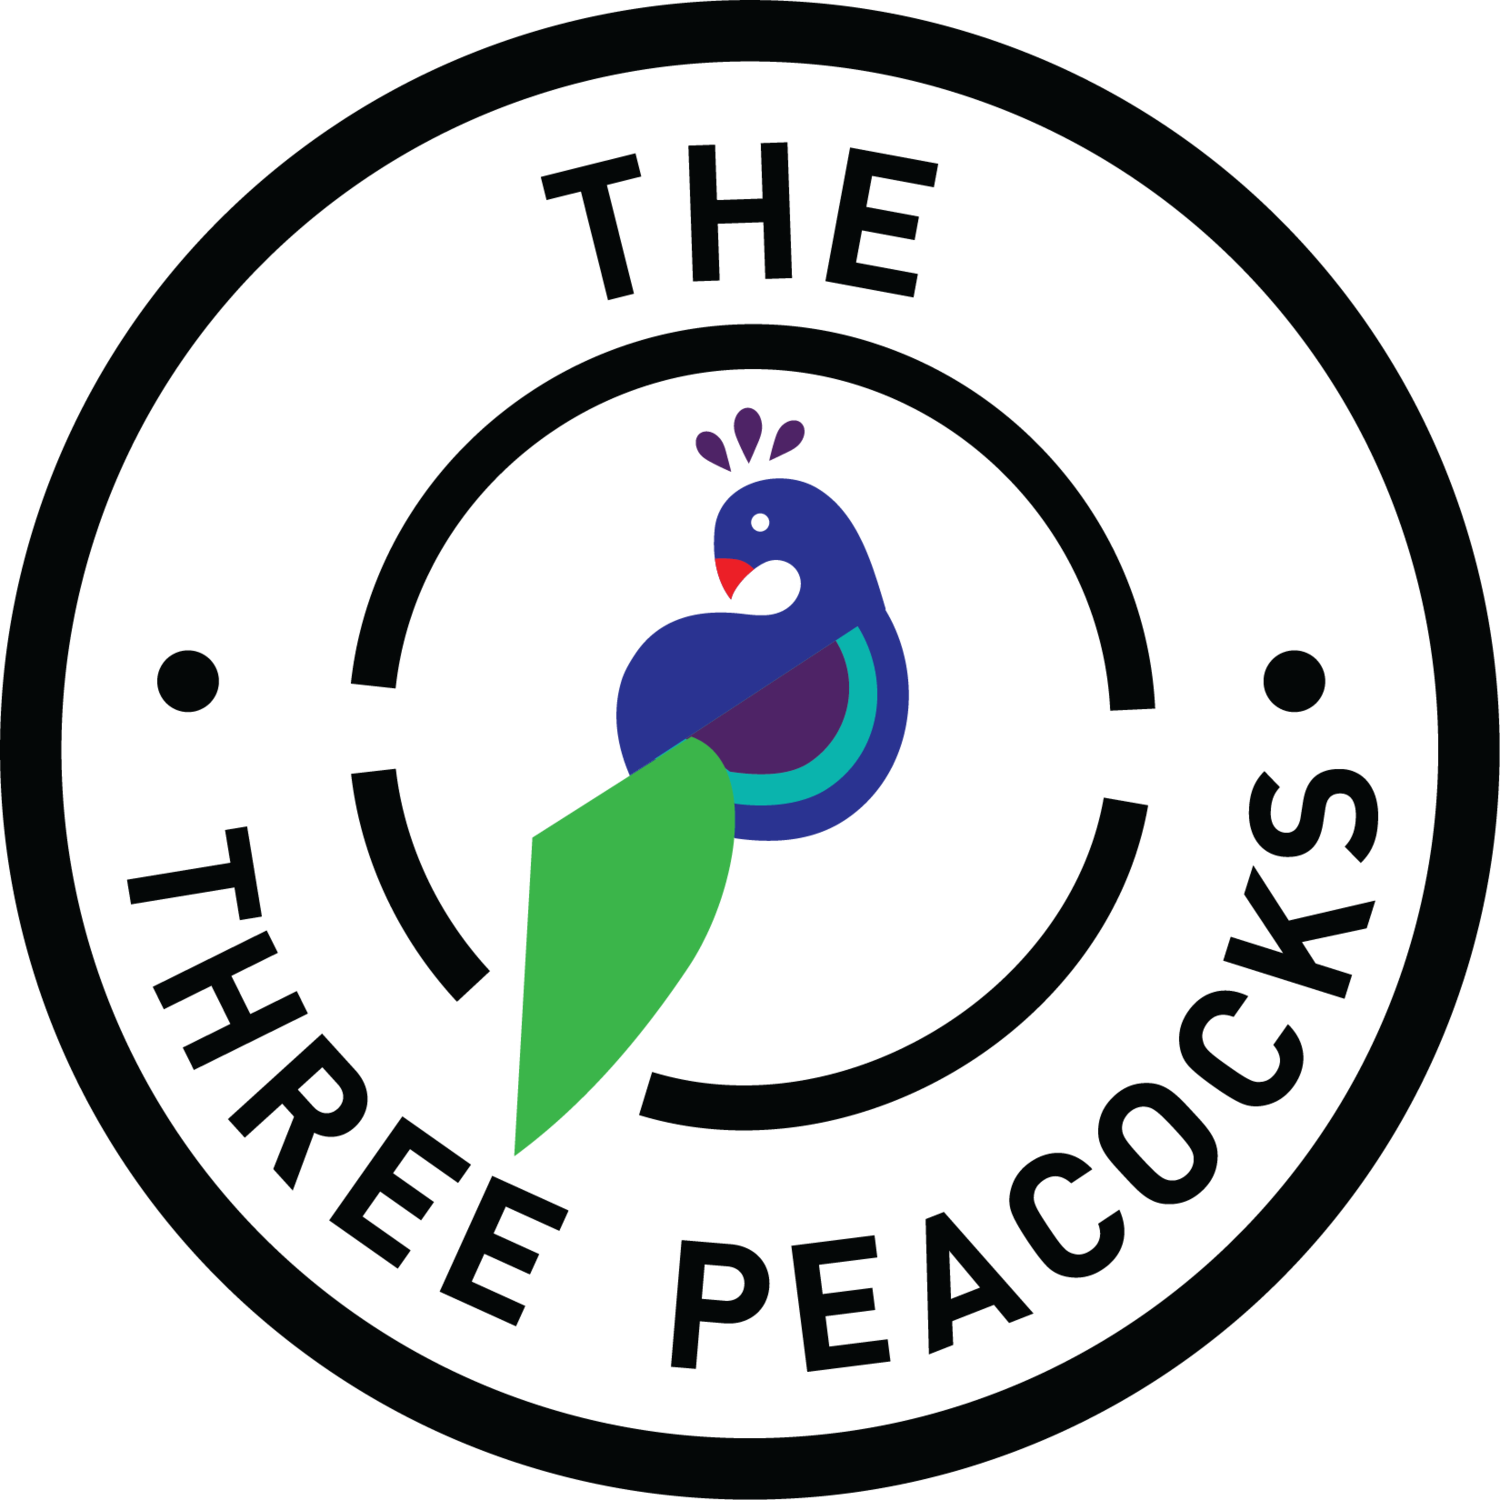 The three peacocks